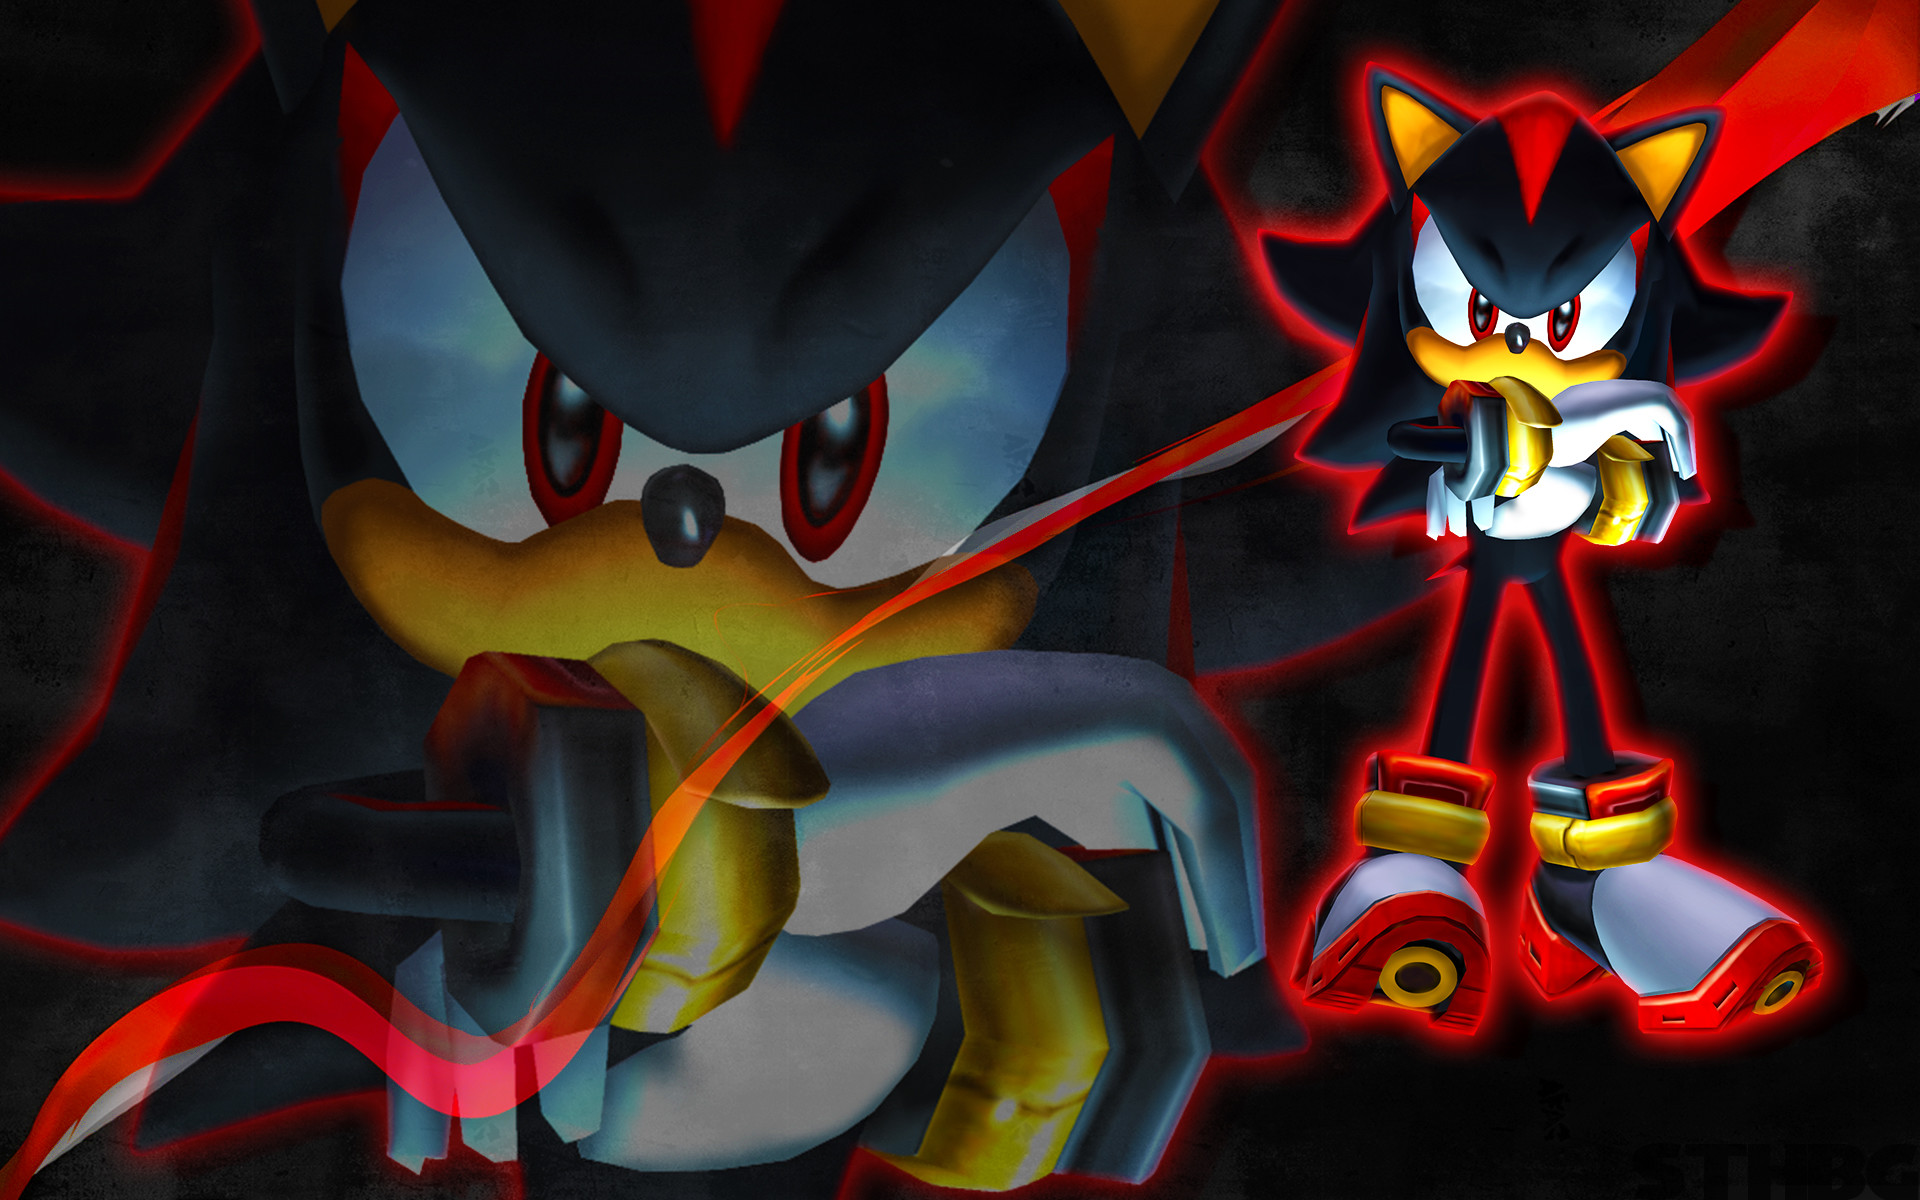 1920x1200 Sonic Adventure 2 Shadow Wallpaper by SonicTheHedgehogBG Sonic Adventure 2  Shadow Wallpaper by SonicTheHedgehogBG